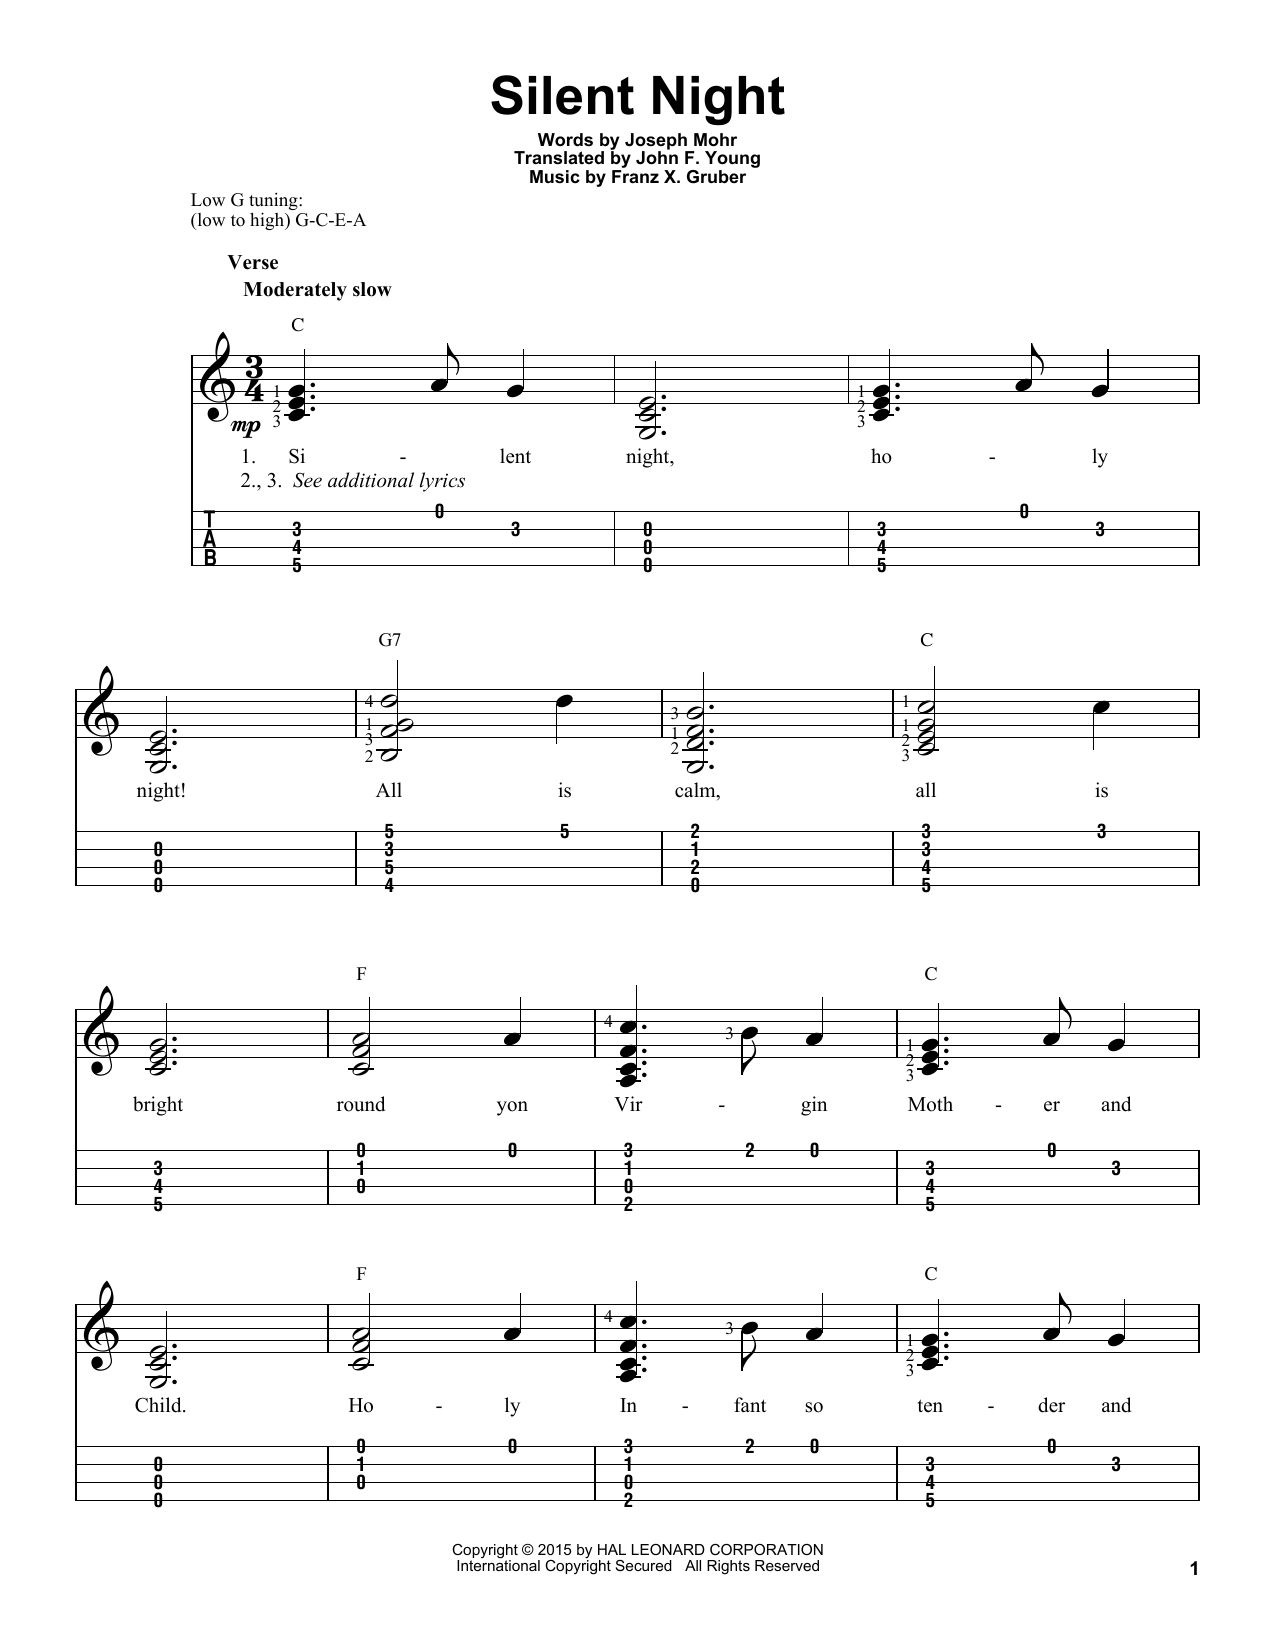 photo regarding Silent Night Lyrics Printable named Franz Gruber Peaceful Night time Sheet Audio Notes, Chords Obtain Printable Ukulele - SKU: 161426